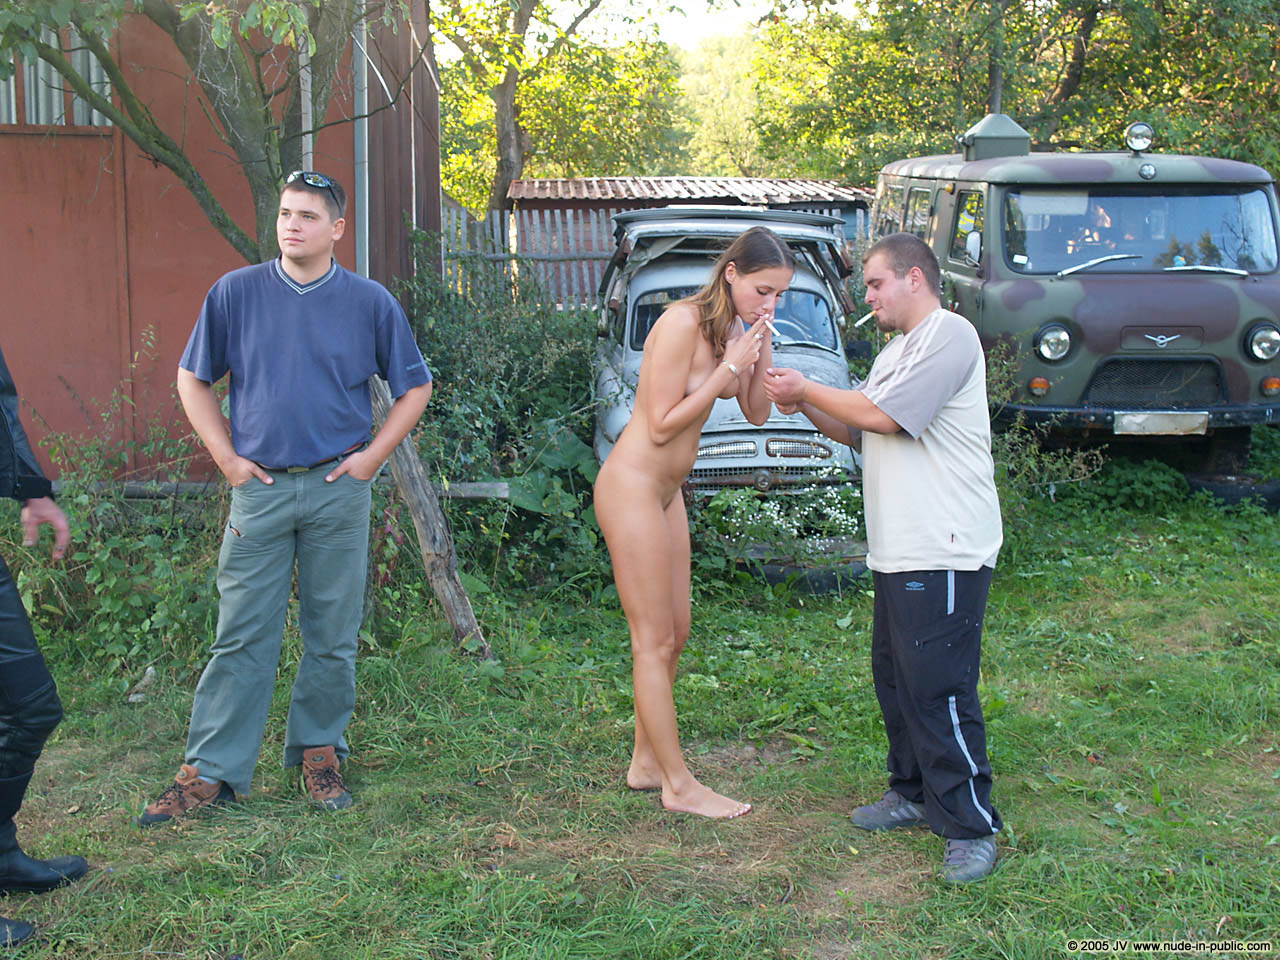 veronika-e-junkyard-cars-mechanic-nude-in-public-24